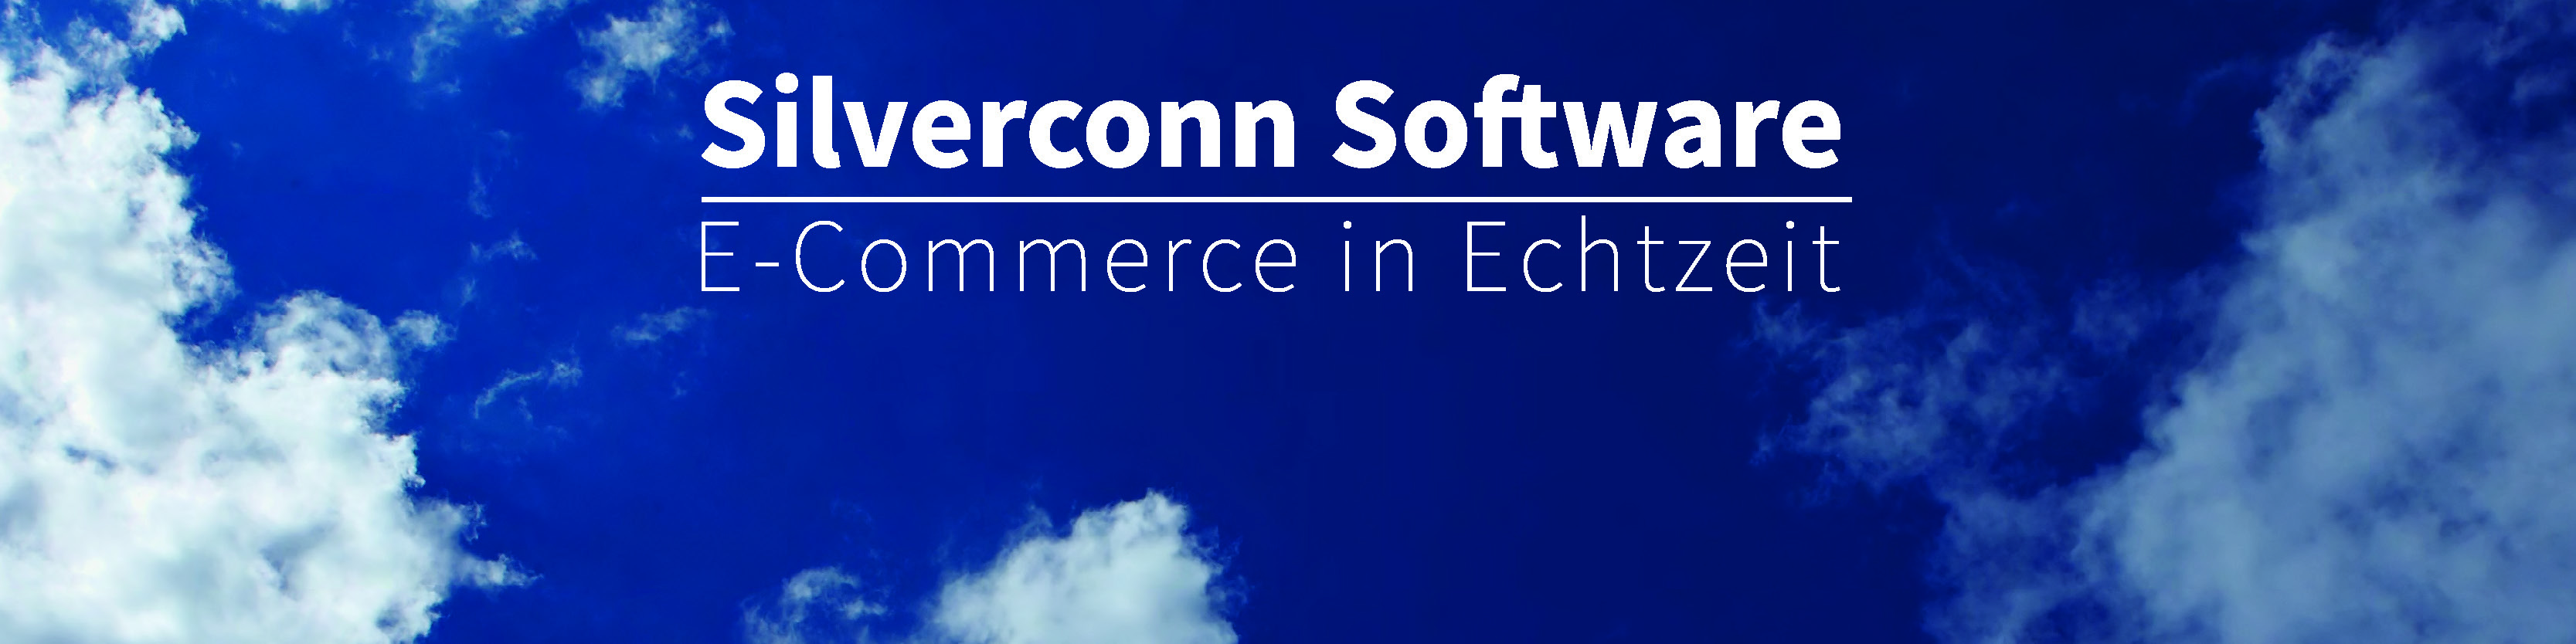 Silverconn Software | eCommerce und Realtime-Web